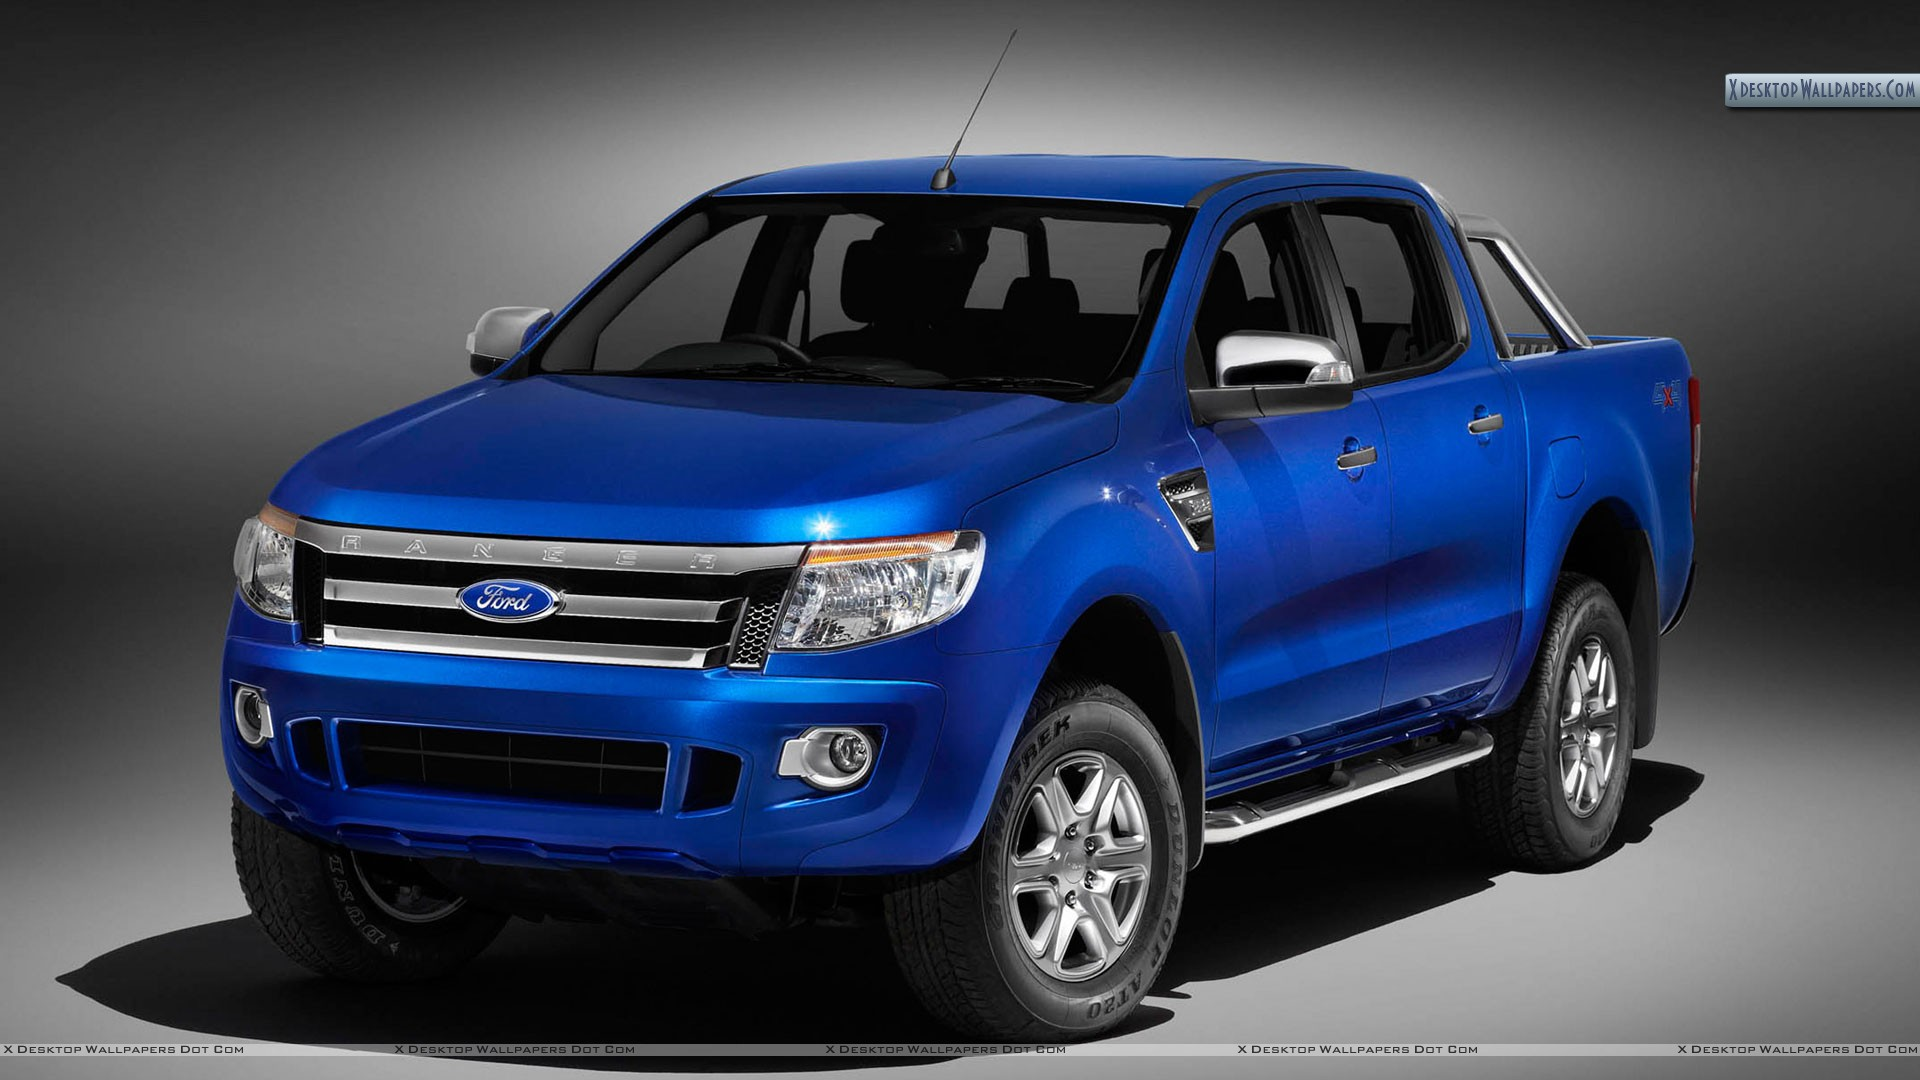 ford ranger 2017 ford ranger truck will come with newly equipped machineries and upgraded interior features ford ranger truck will have mind blowing exterior body design.